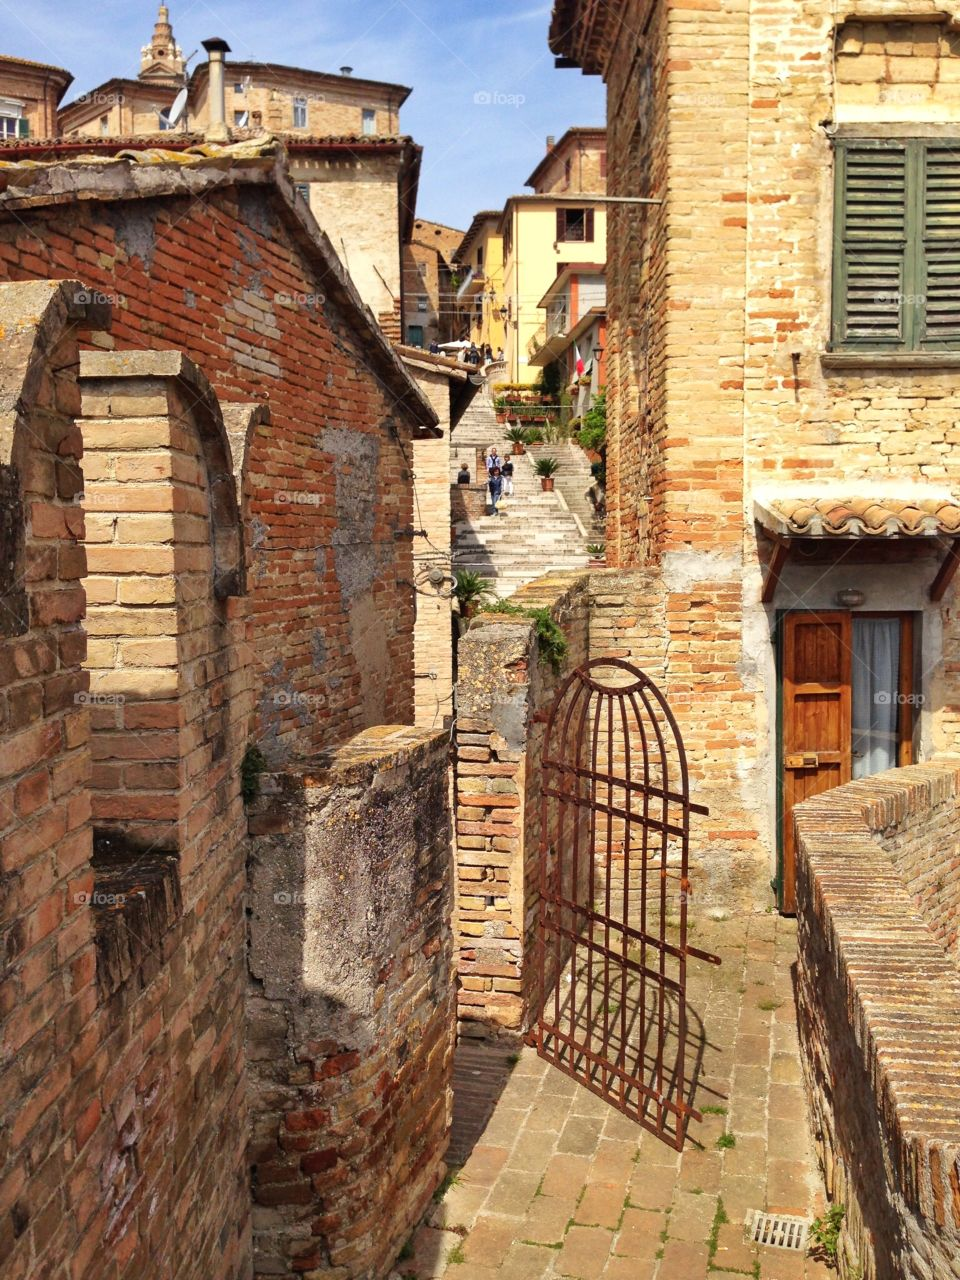 Ancient Houses in italian town